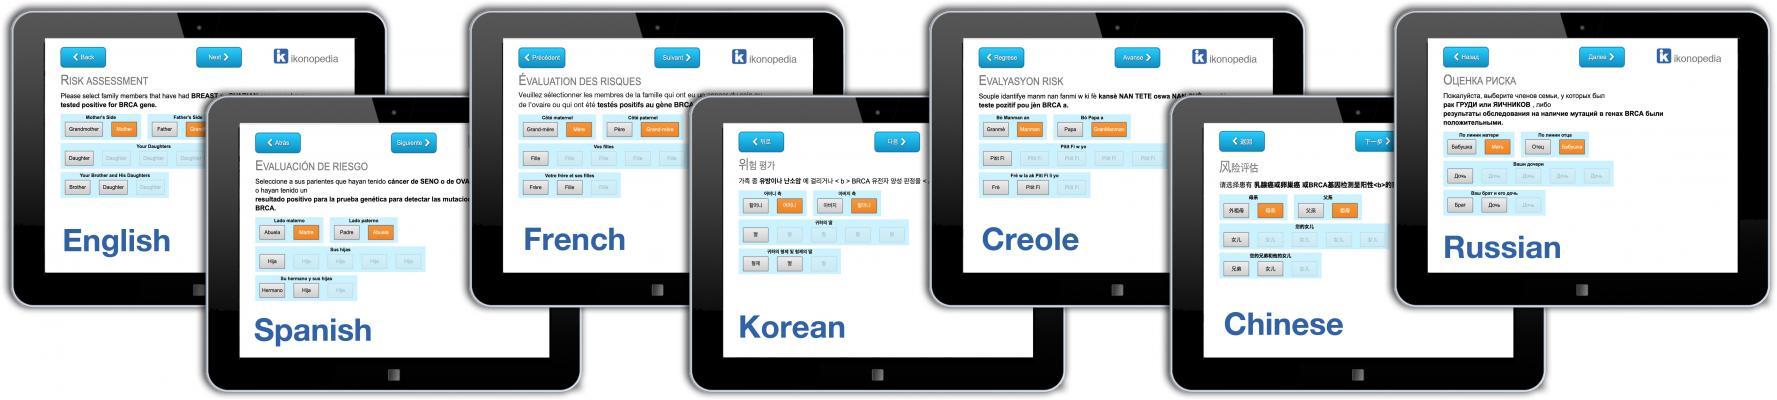 Ikonopedia Showcases Risk Assessment and Resolution Manager Tools at SIIM and AHRA